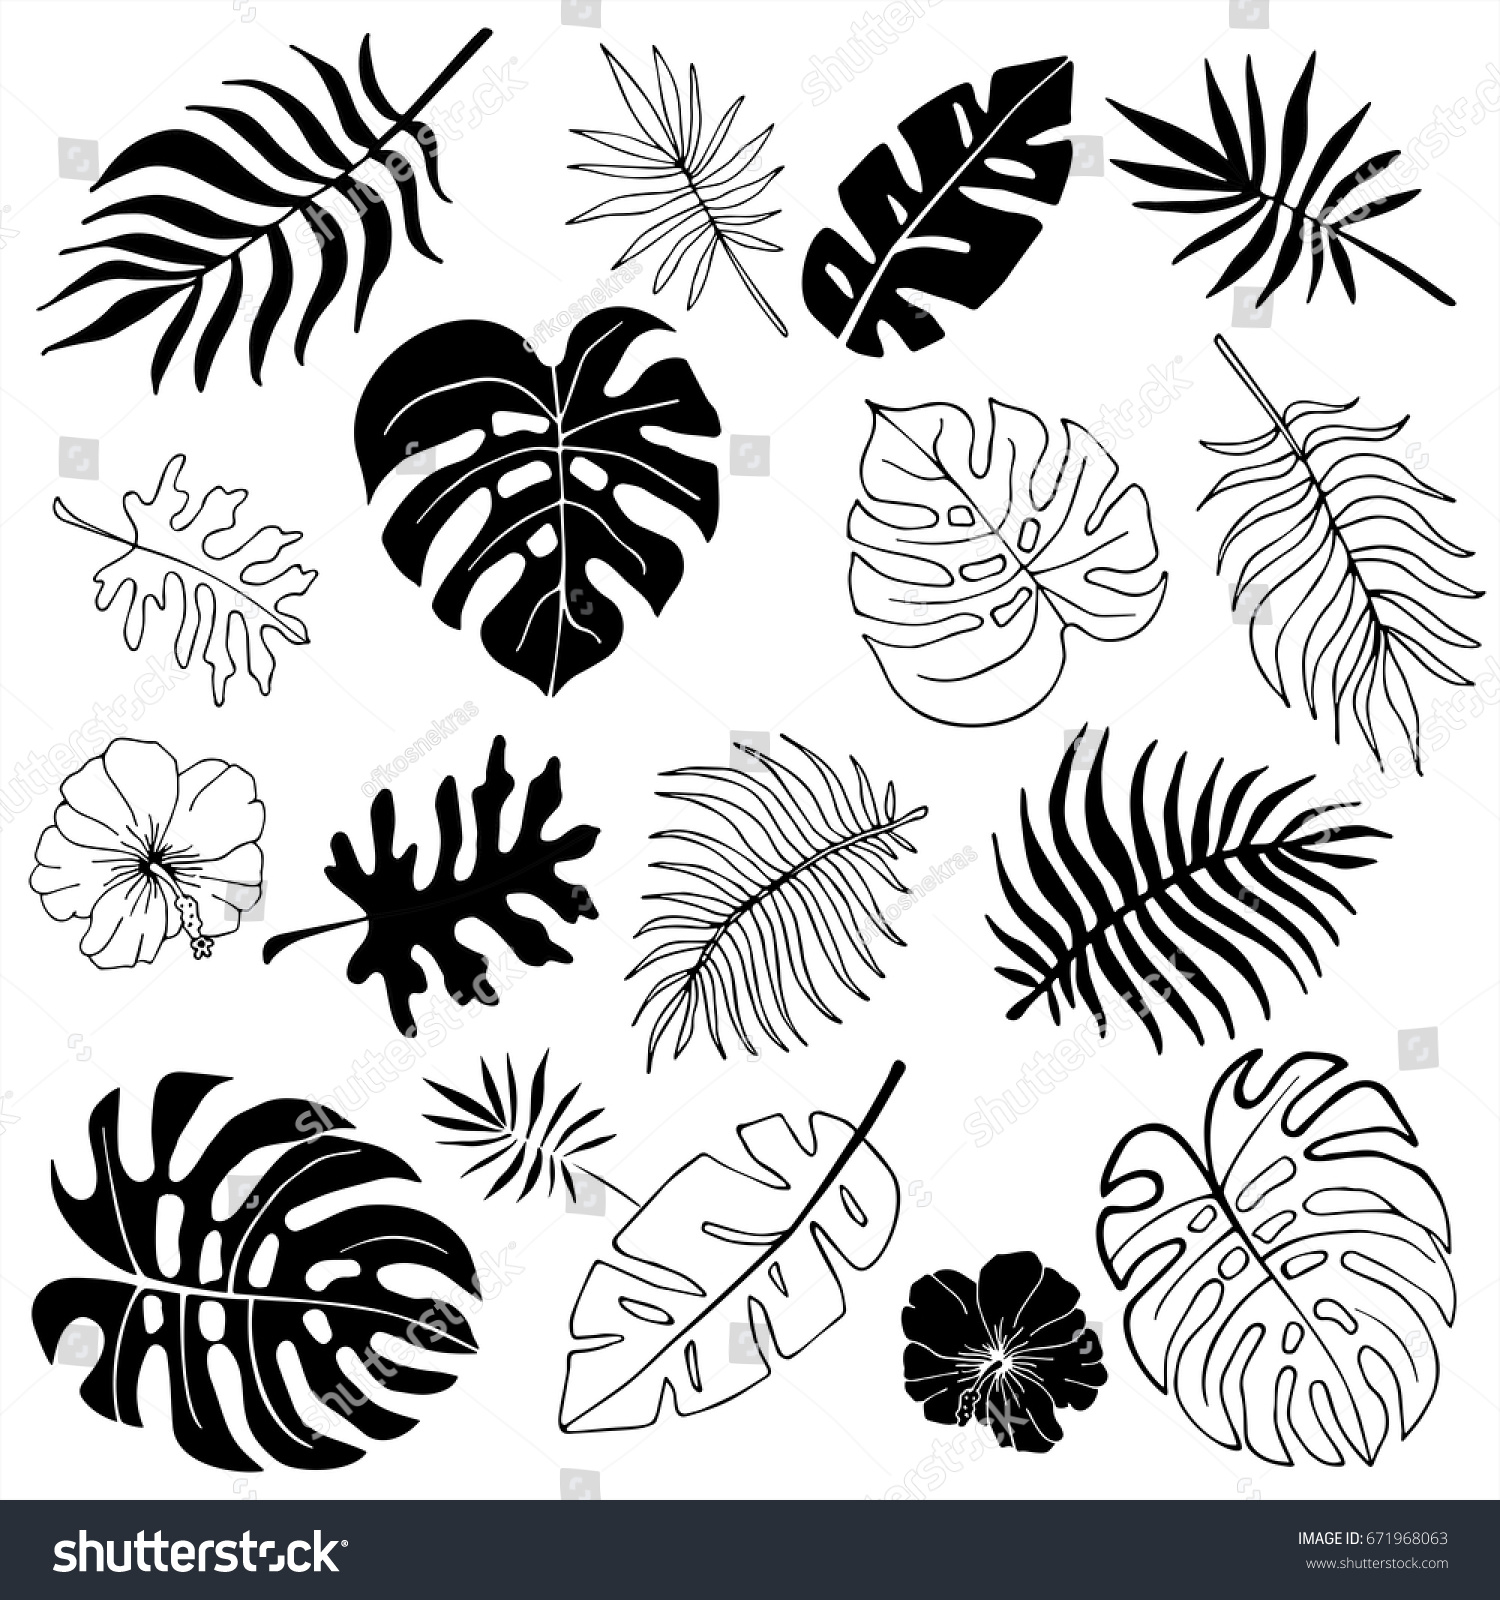 Isolated Silhouettes Tropical Palm Leaves Jungle Stock Vector ...